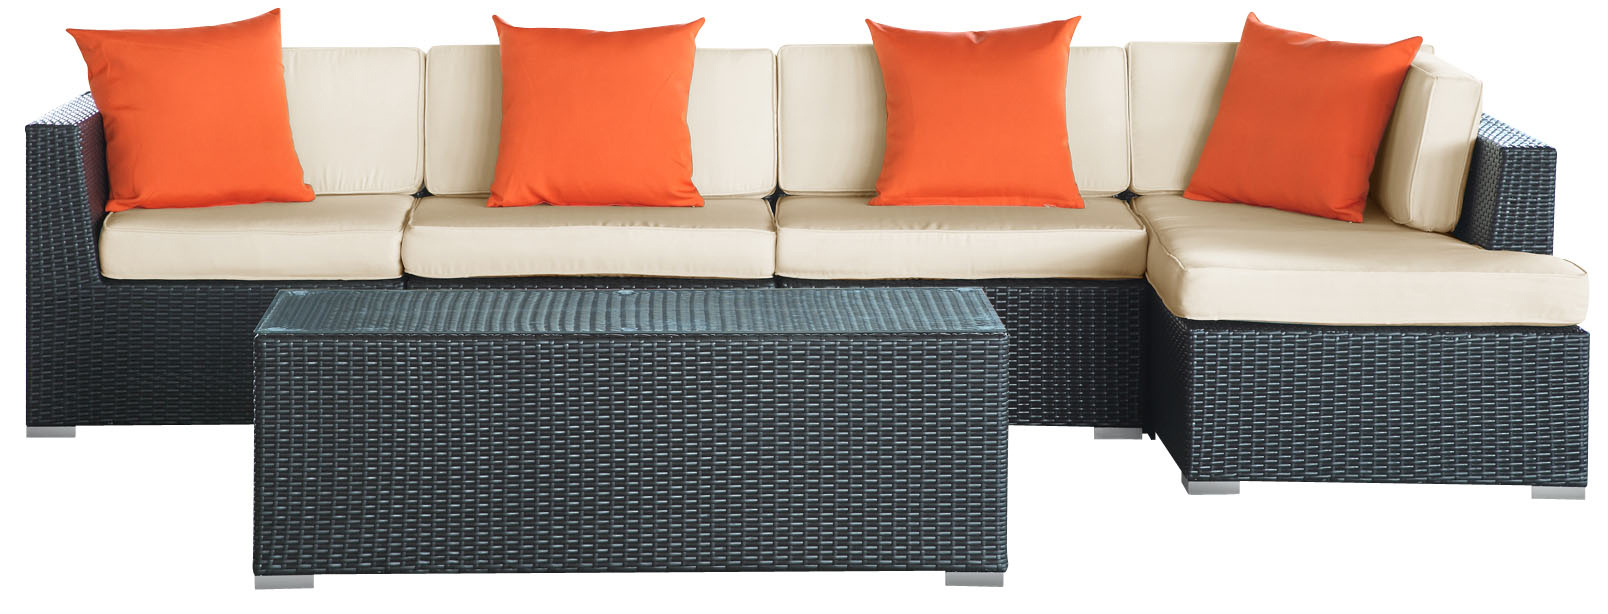 bonaire outdoor sectional set brazil outdoor sectional set